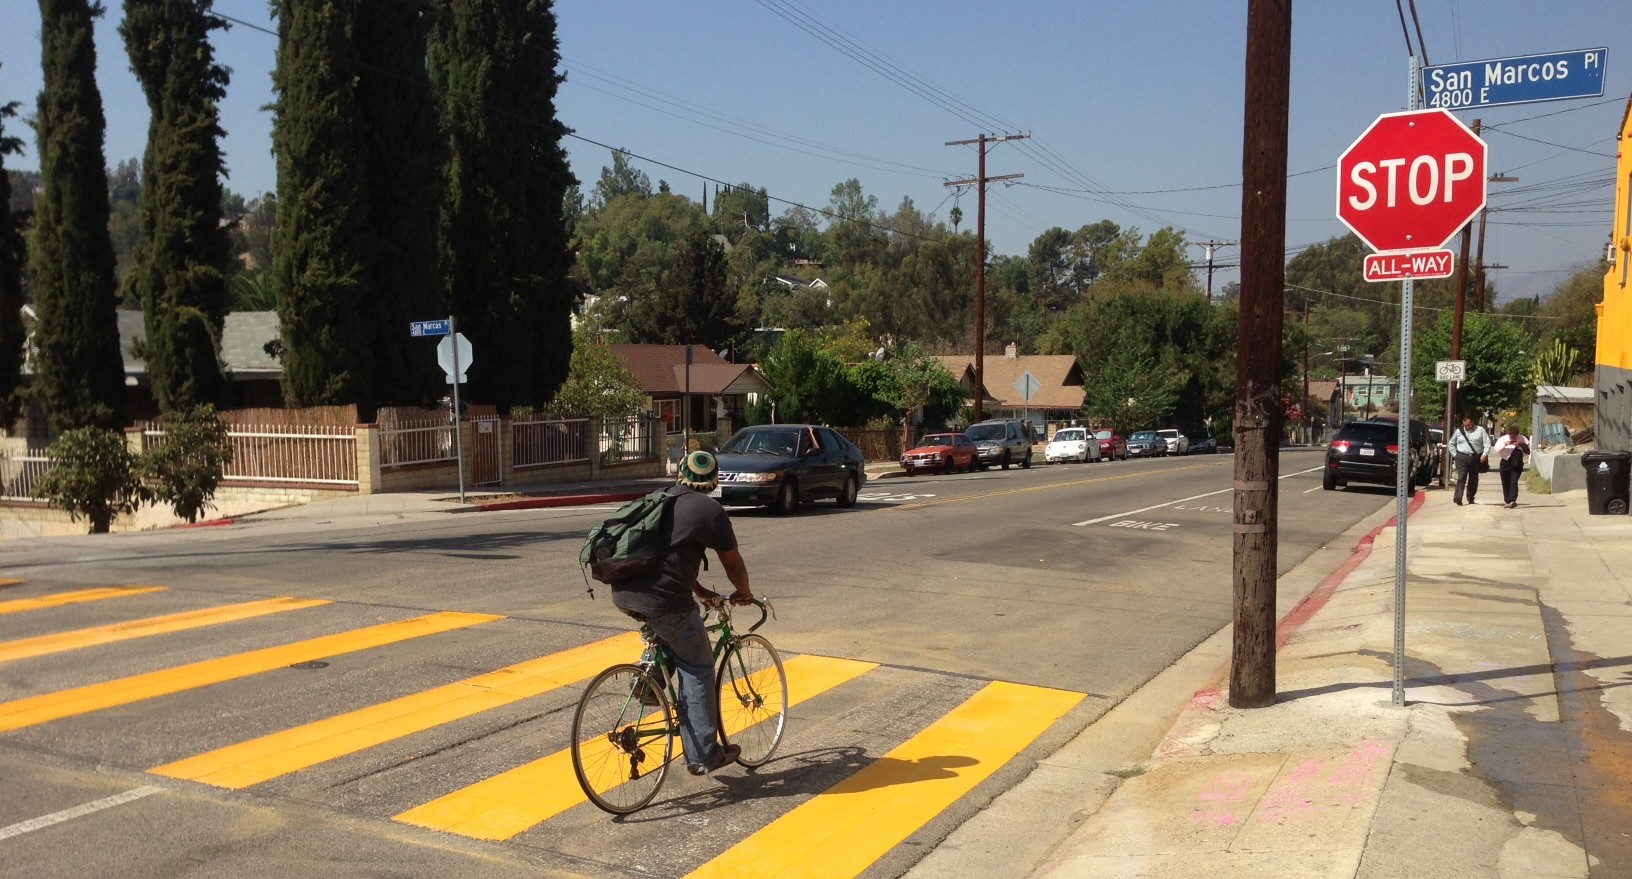 New stop sign at Avenue 50 and San Marcos Place in Highland Park. Photo: Joe Linton/Streetsblog L.A.